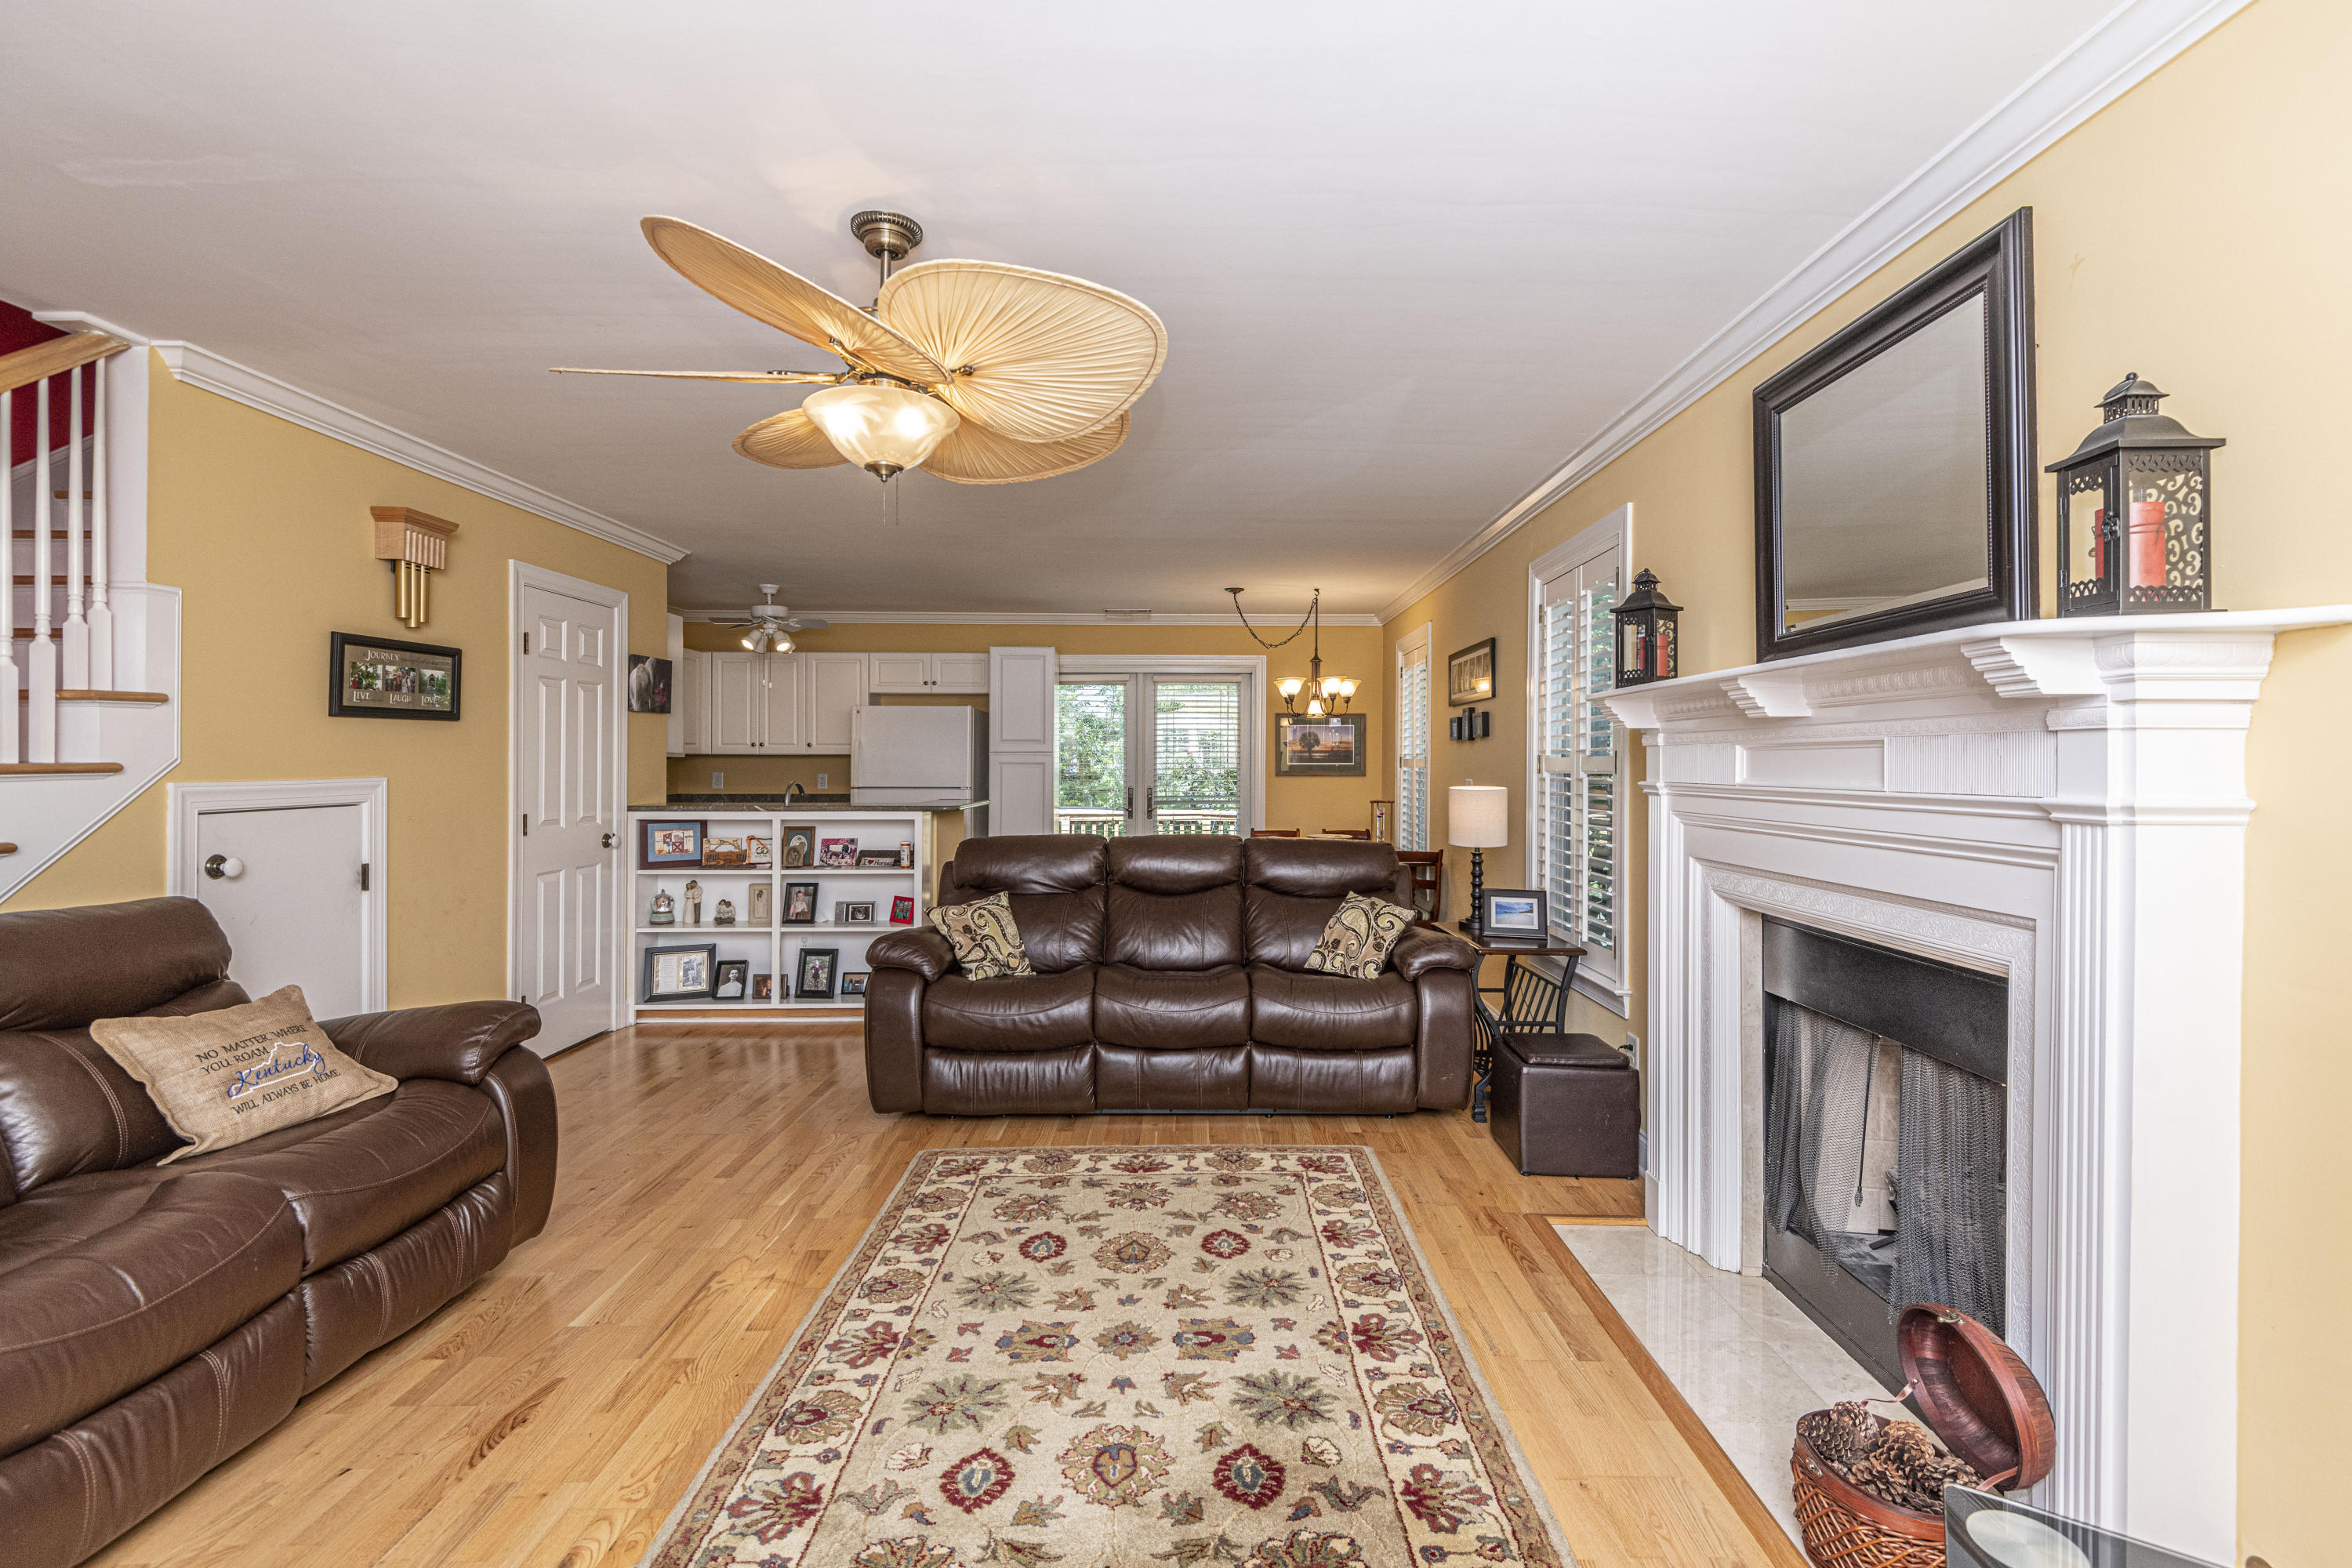 The Reserve at Wando East Homes For Sale - 1681 Lauda, Mount Pleasant, SC - 25